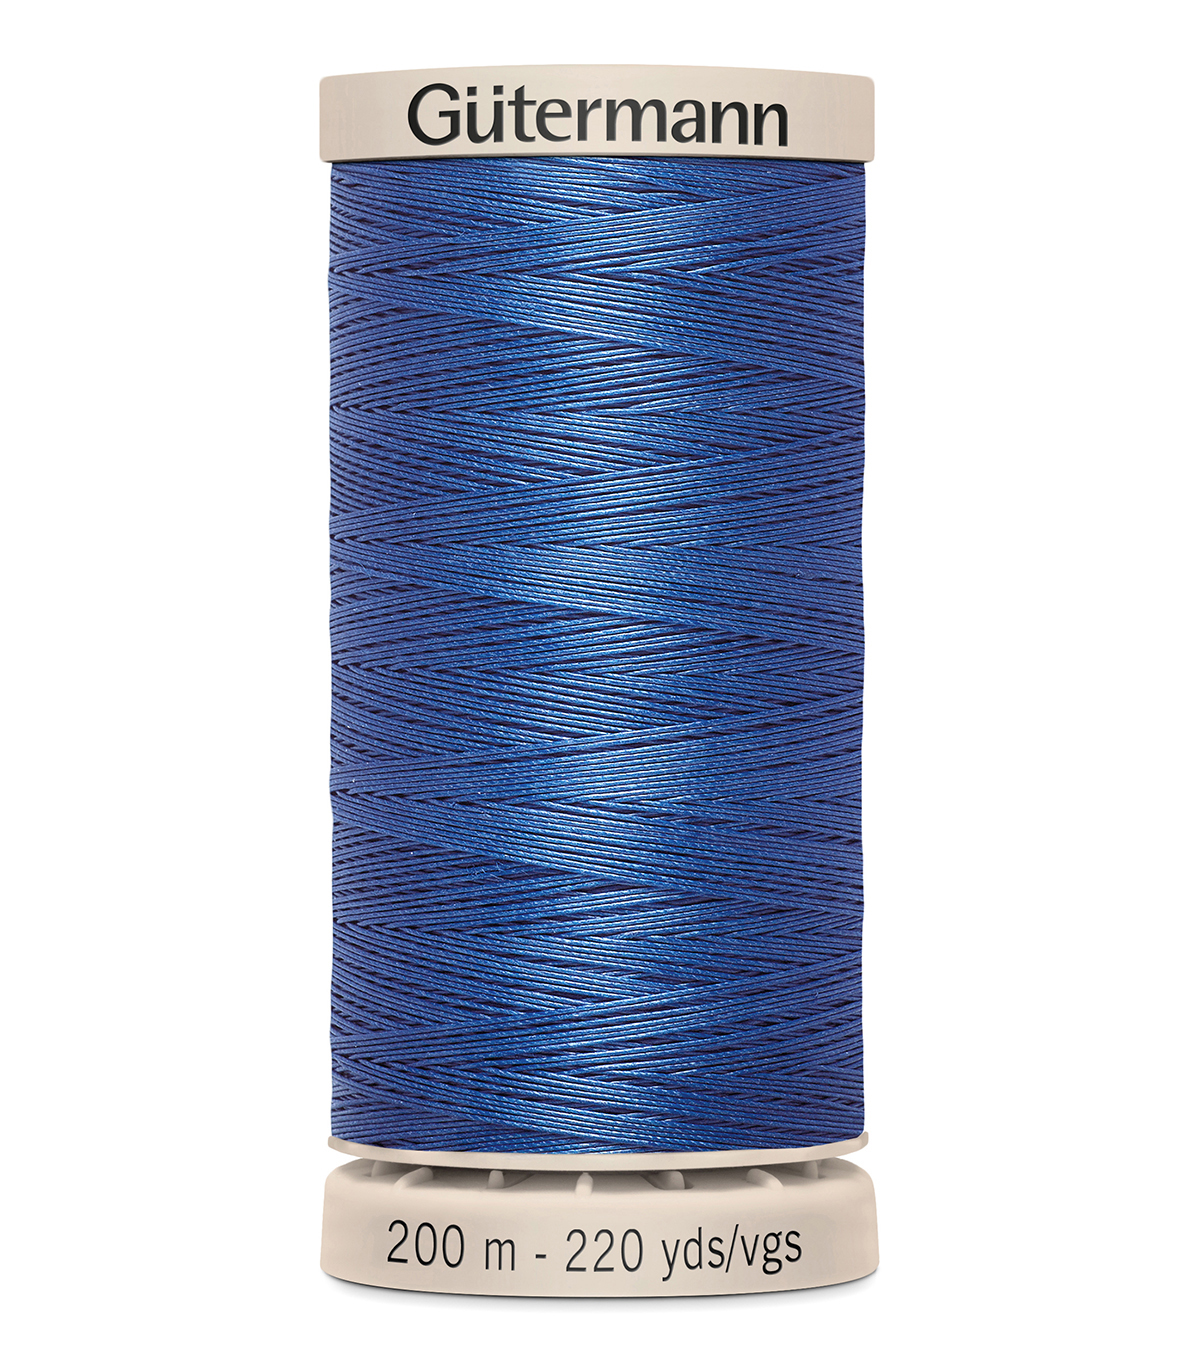 Gutermann Hand Quilting Thread 200 Meters (220 Yrds)-Primary, Royal#5133